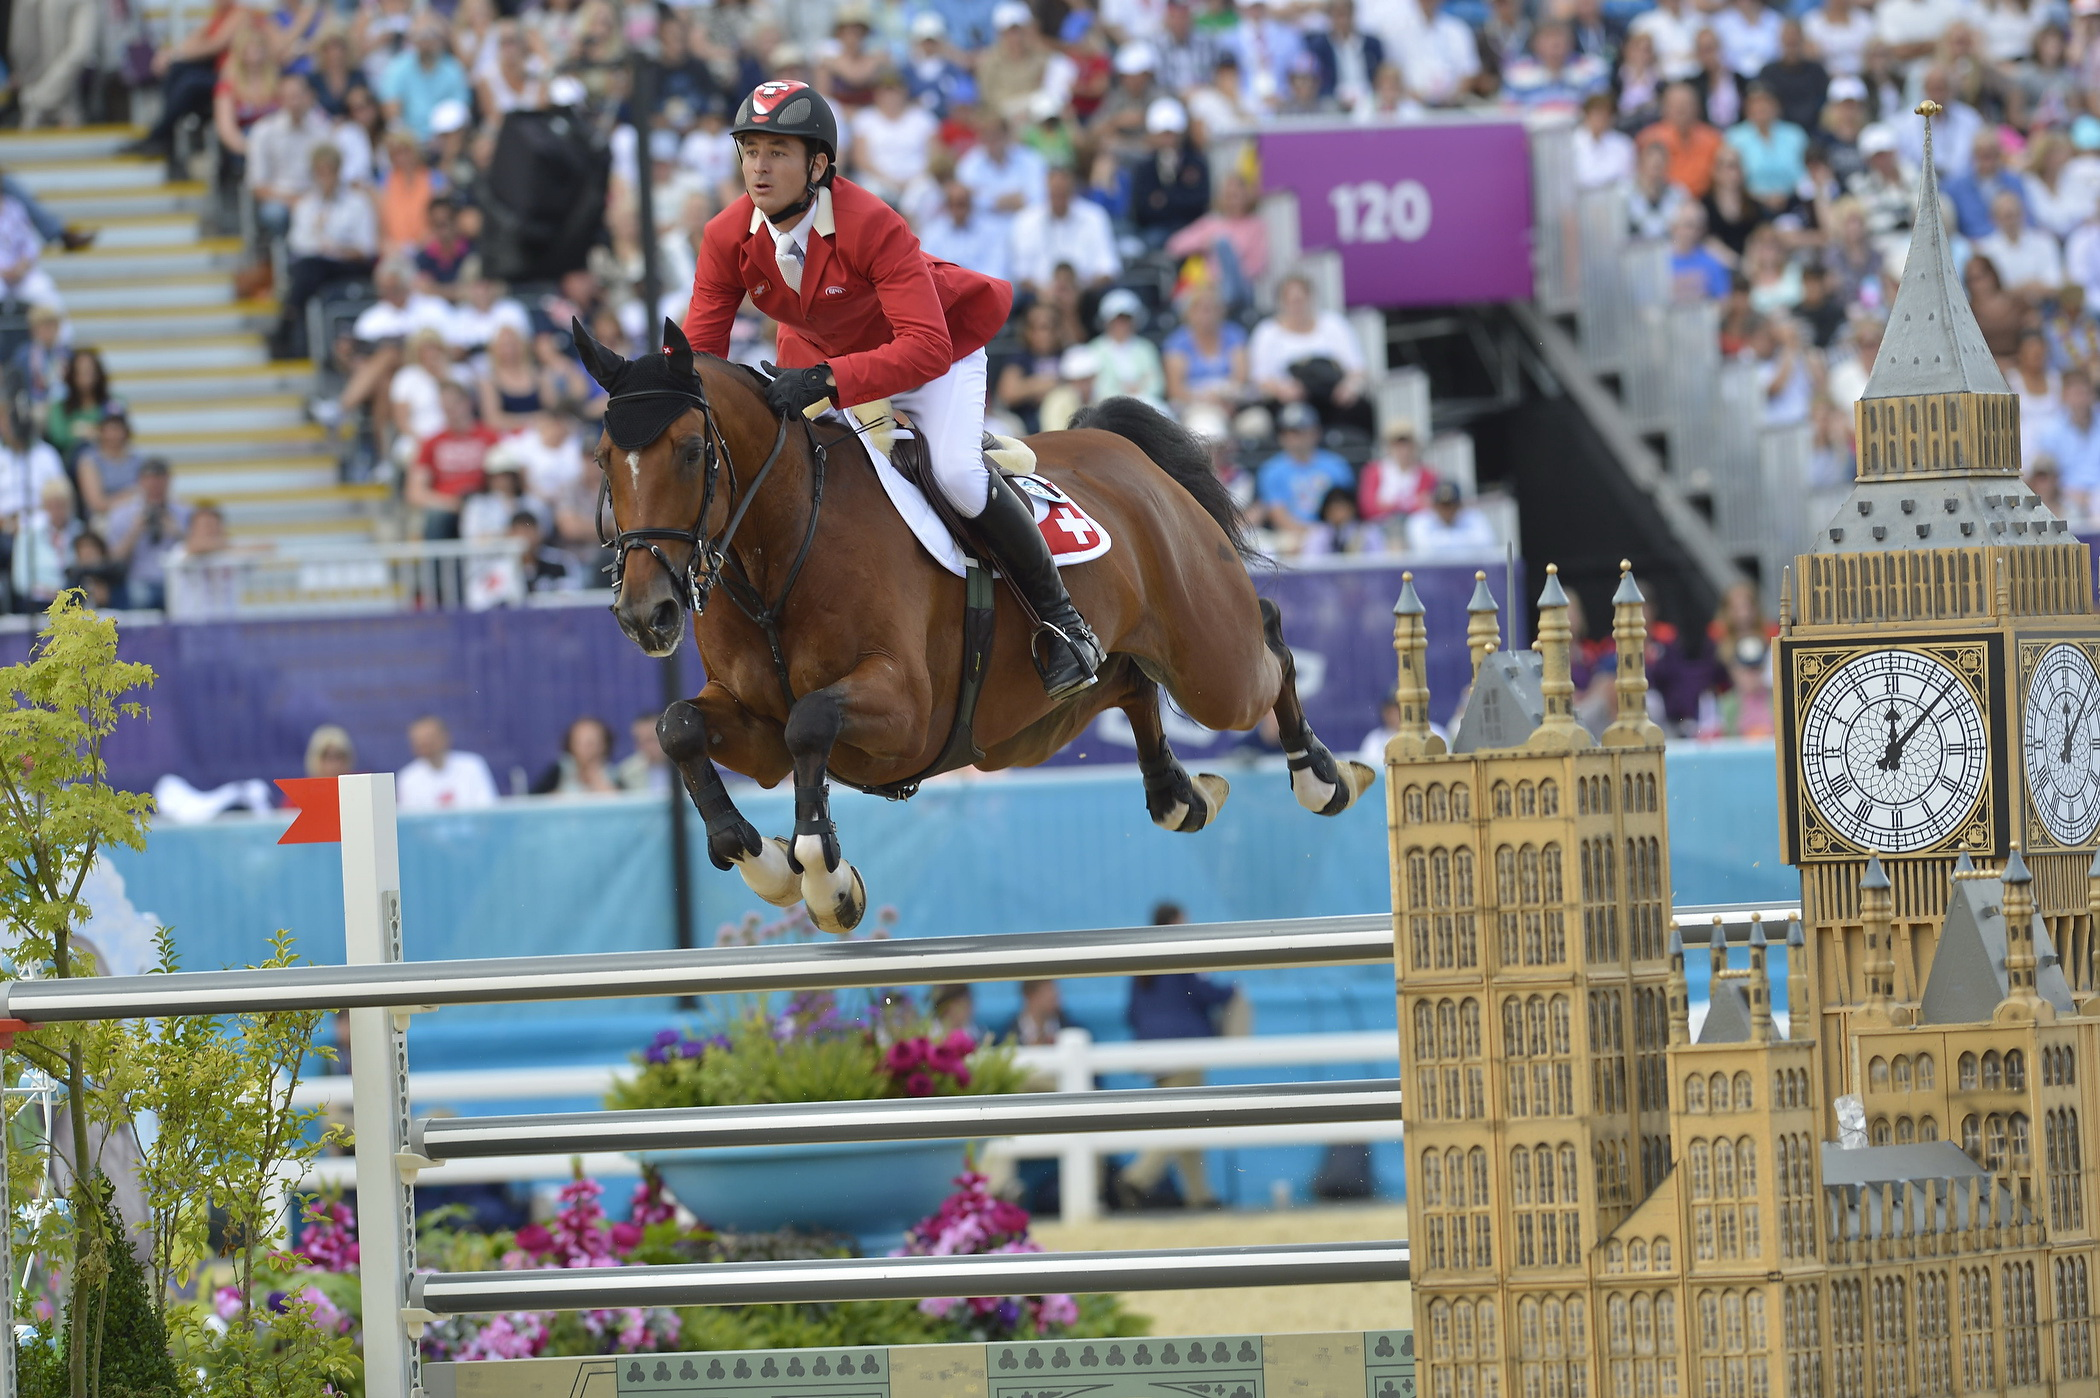 Switzerland's Steve Guerdat and Nino des Buissonnets will be going for a record-breaking back-to-back double of individual gold medals in Jumping at the Rio 2016 Olympic Games. © FEI/Kit Houghton